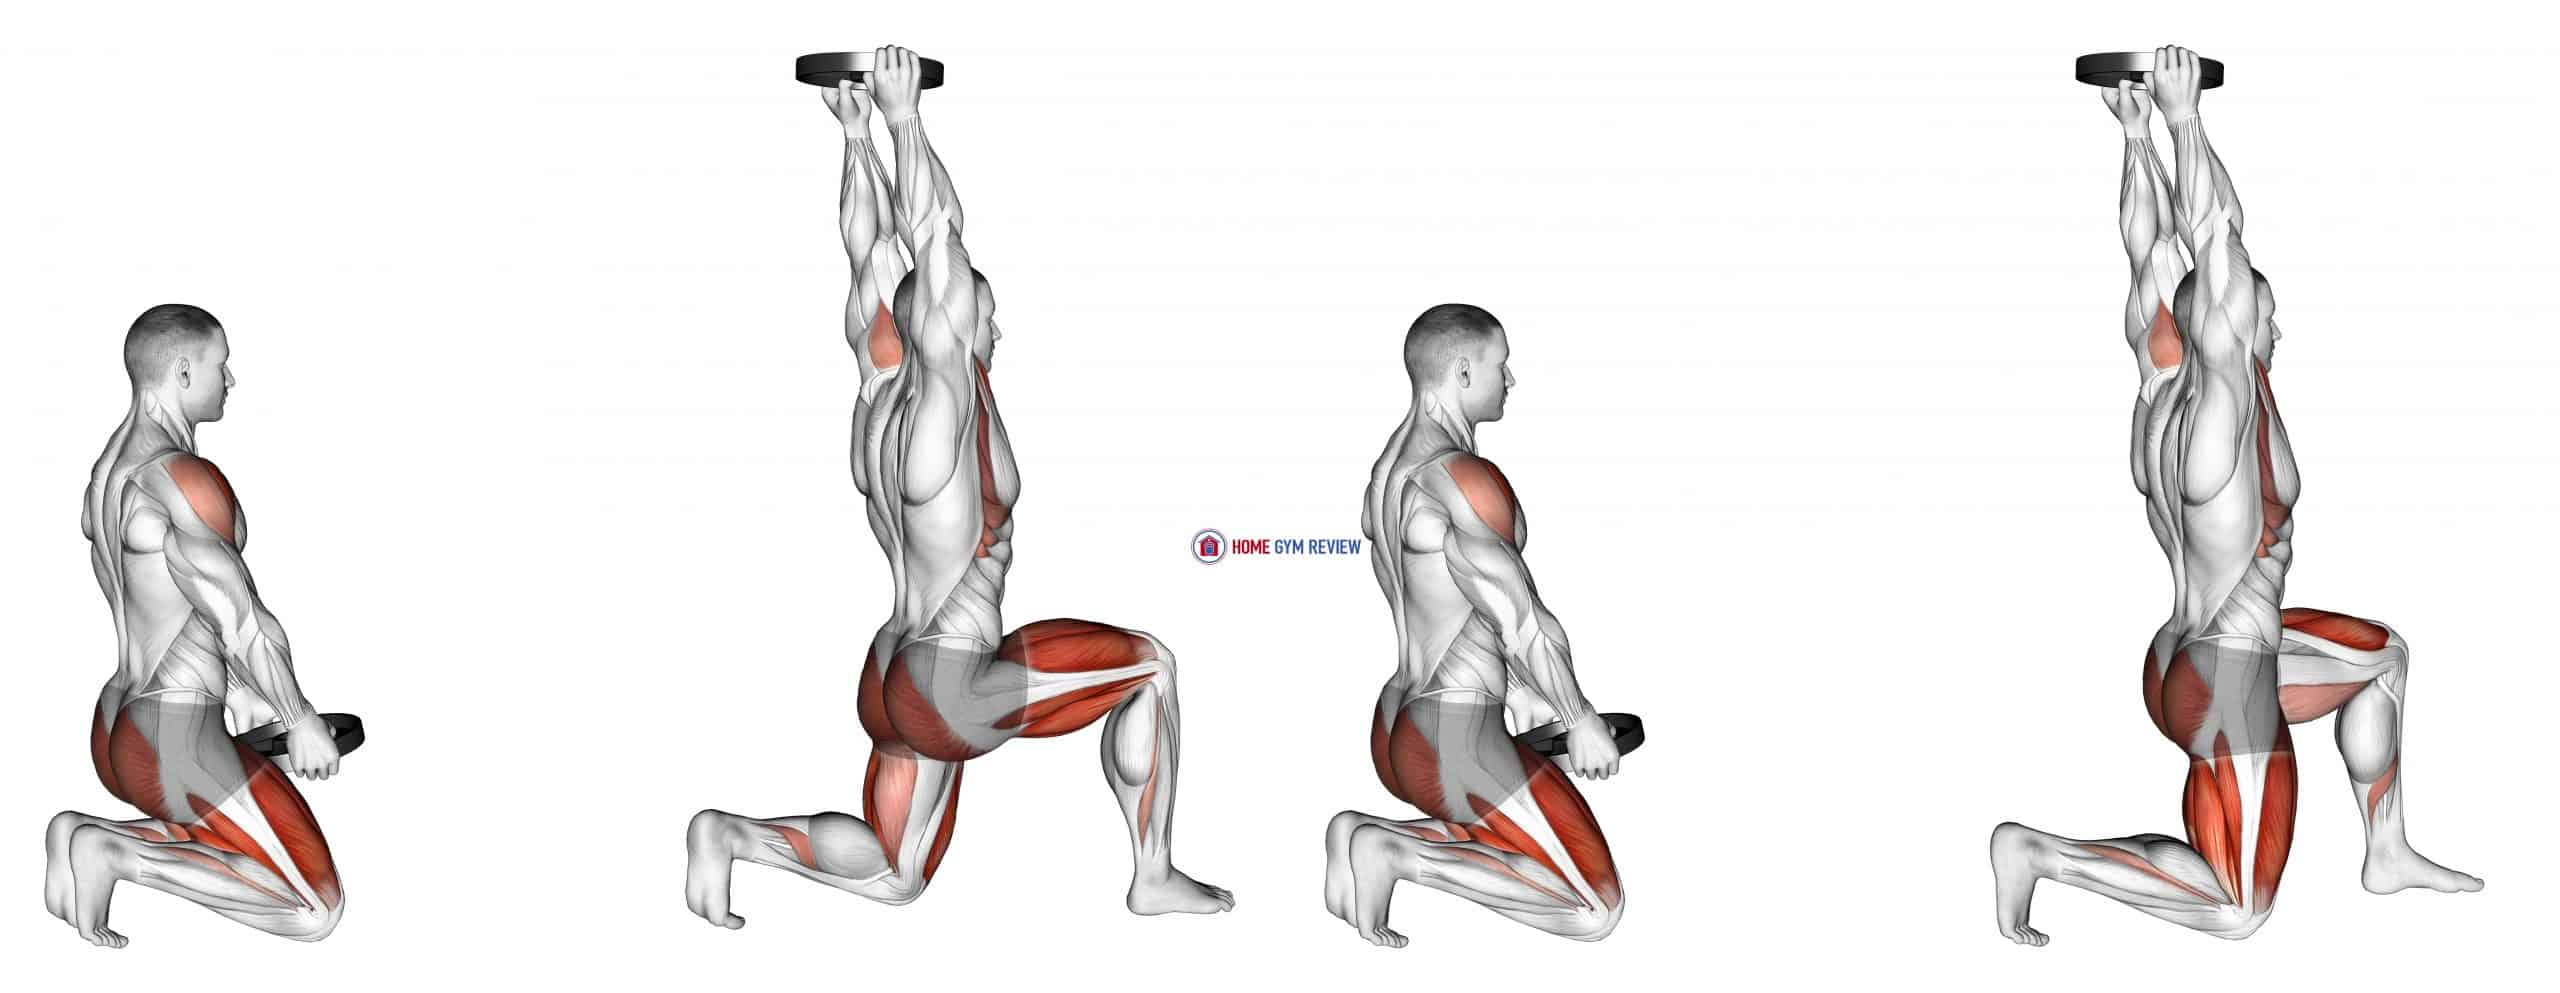 Weighted Kneeling Step with Swing